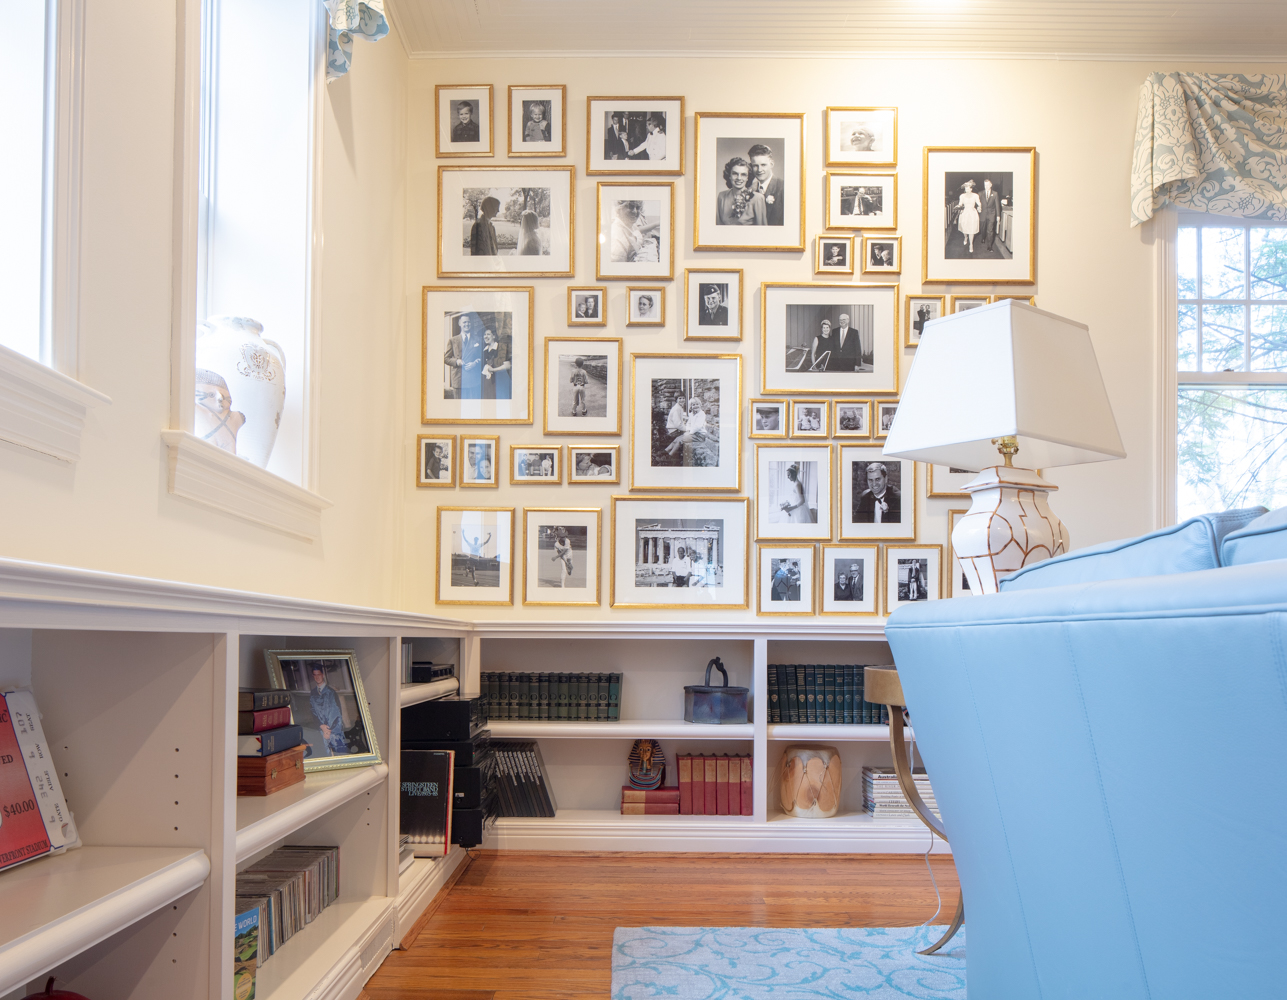 Living room with white wooden bookshelf and picture frames on wall